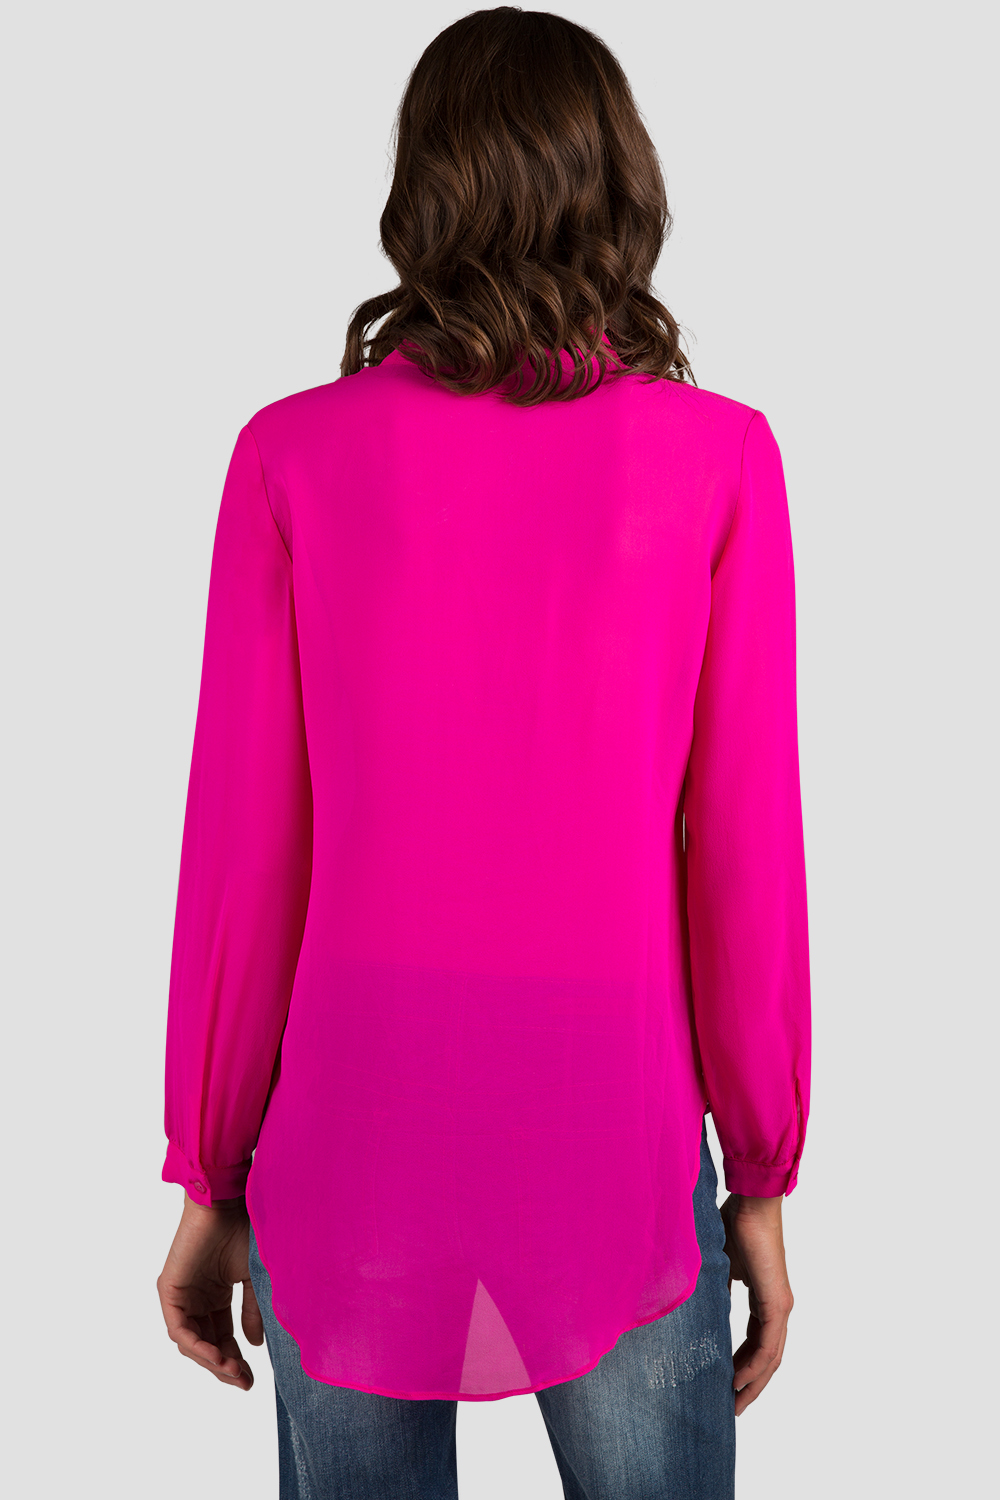 Hot Pink Button Down Chiffon Blouse